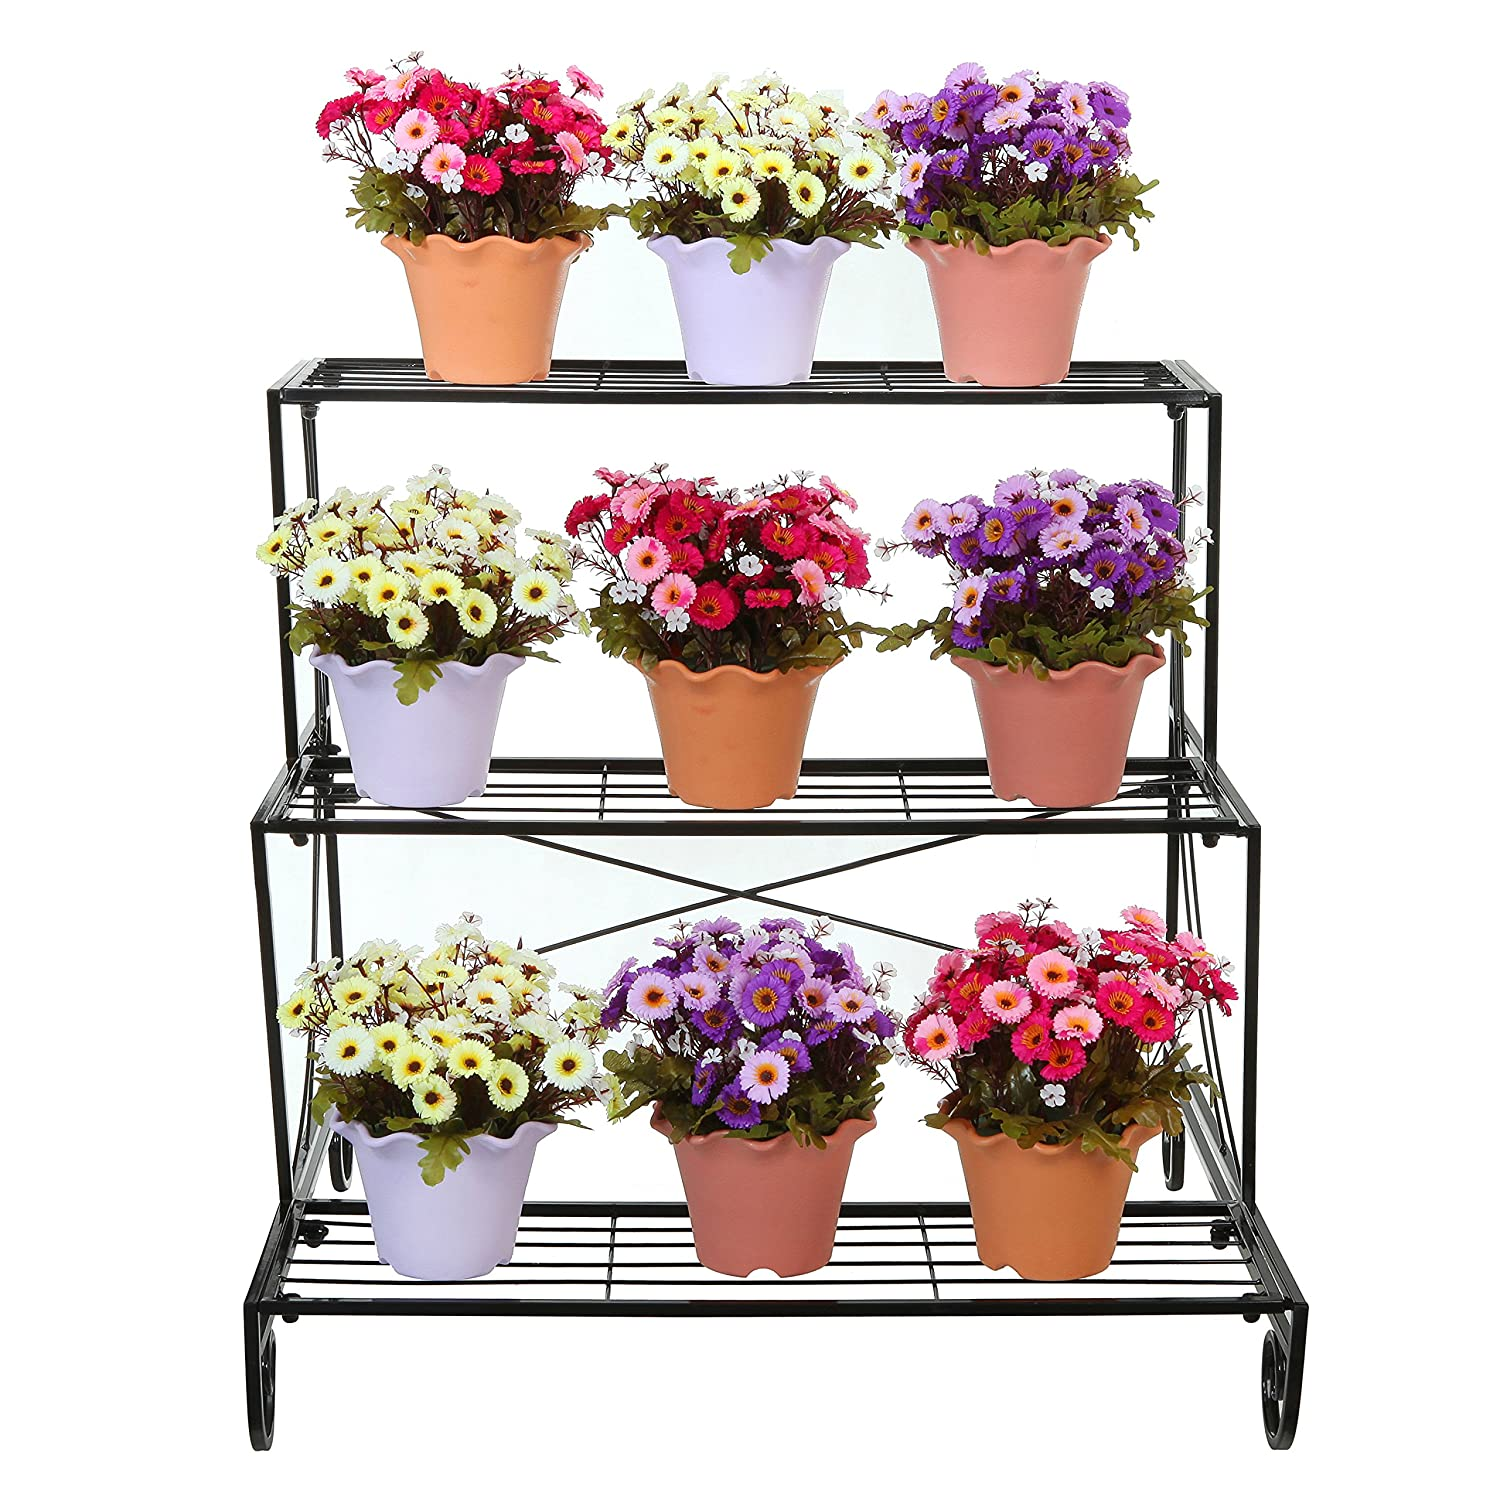 Tiered Plant Holders 3 Tier Decorative Black Metal Plant Stand Planter Holder